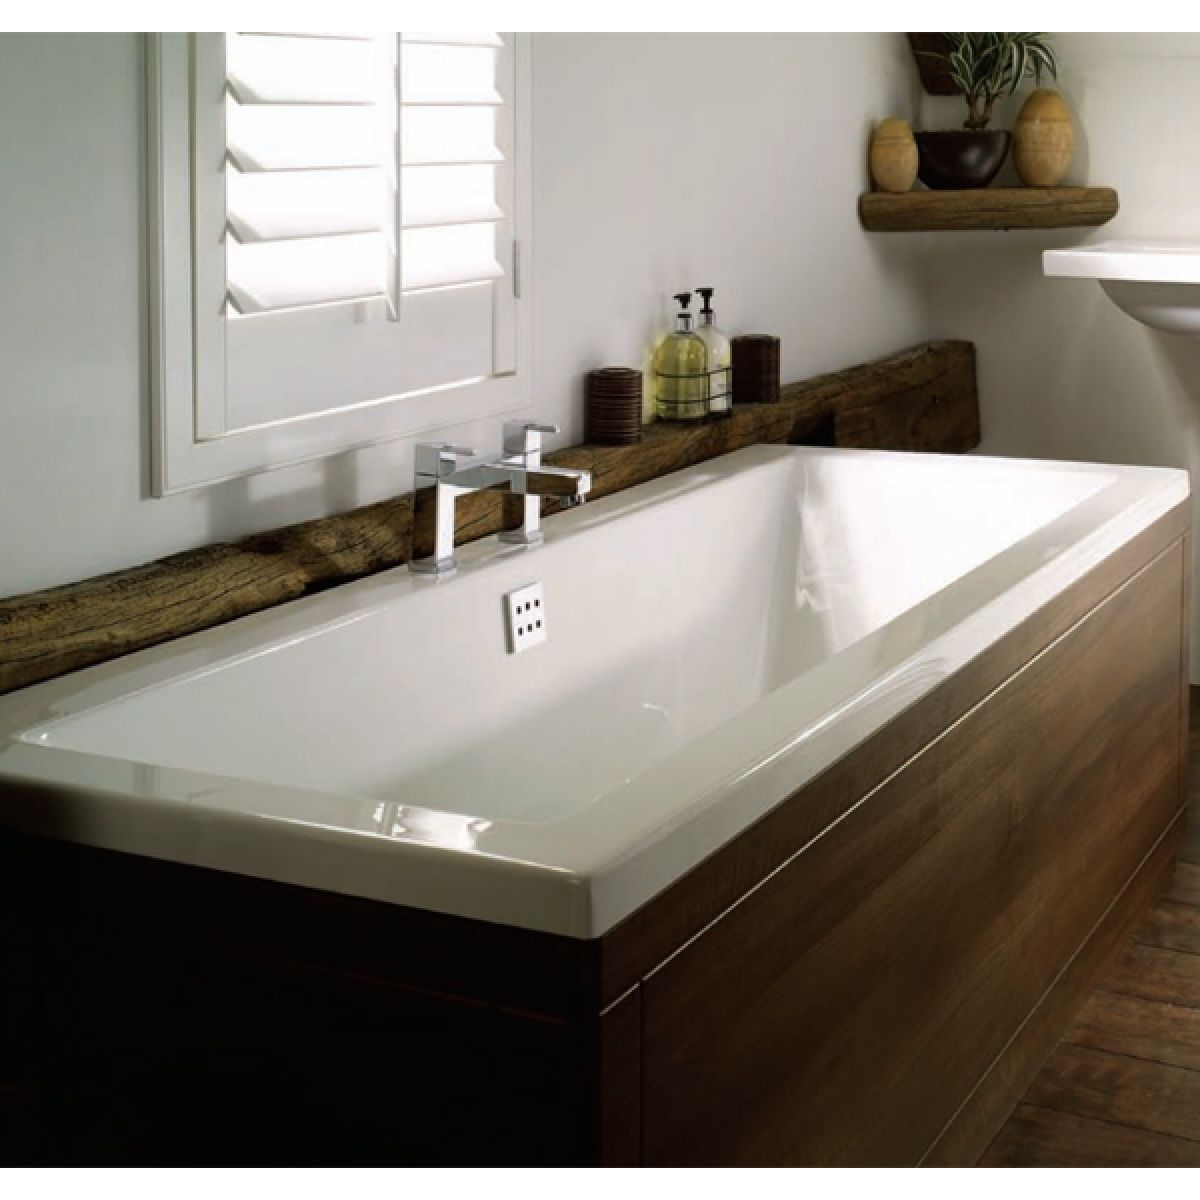 Frontline Carrera Luxury Double Ended Bath in Situation